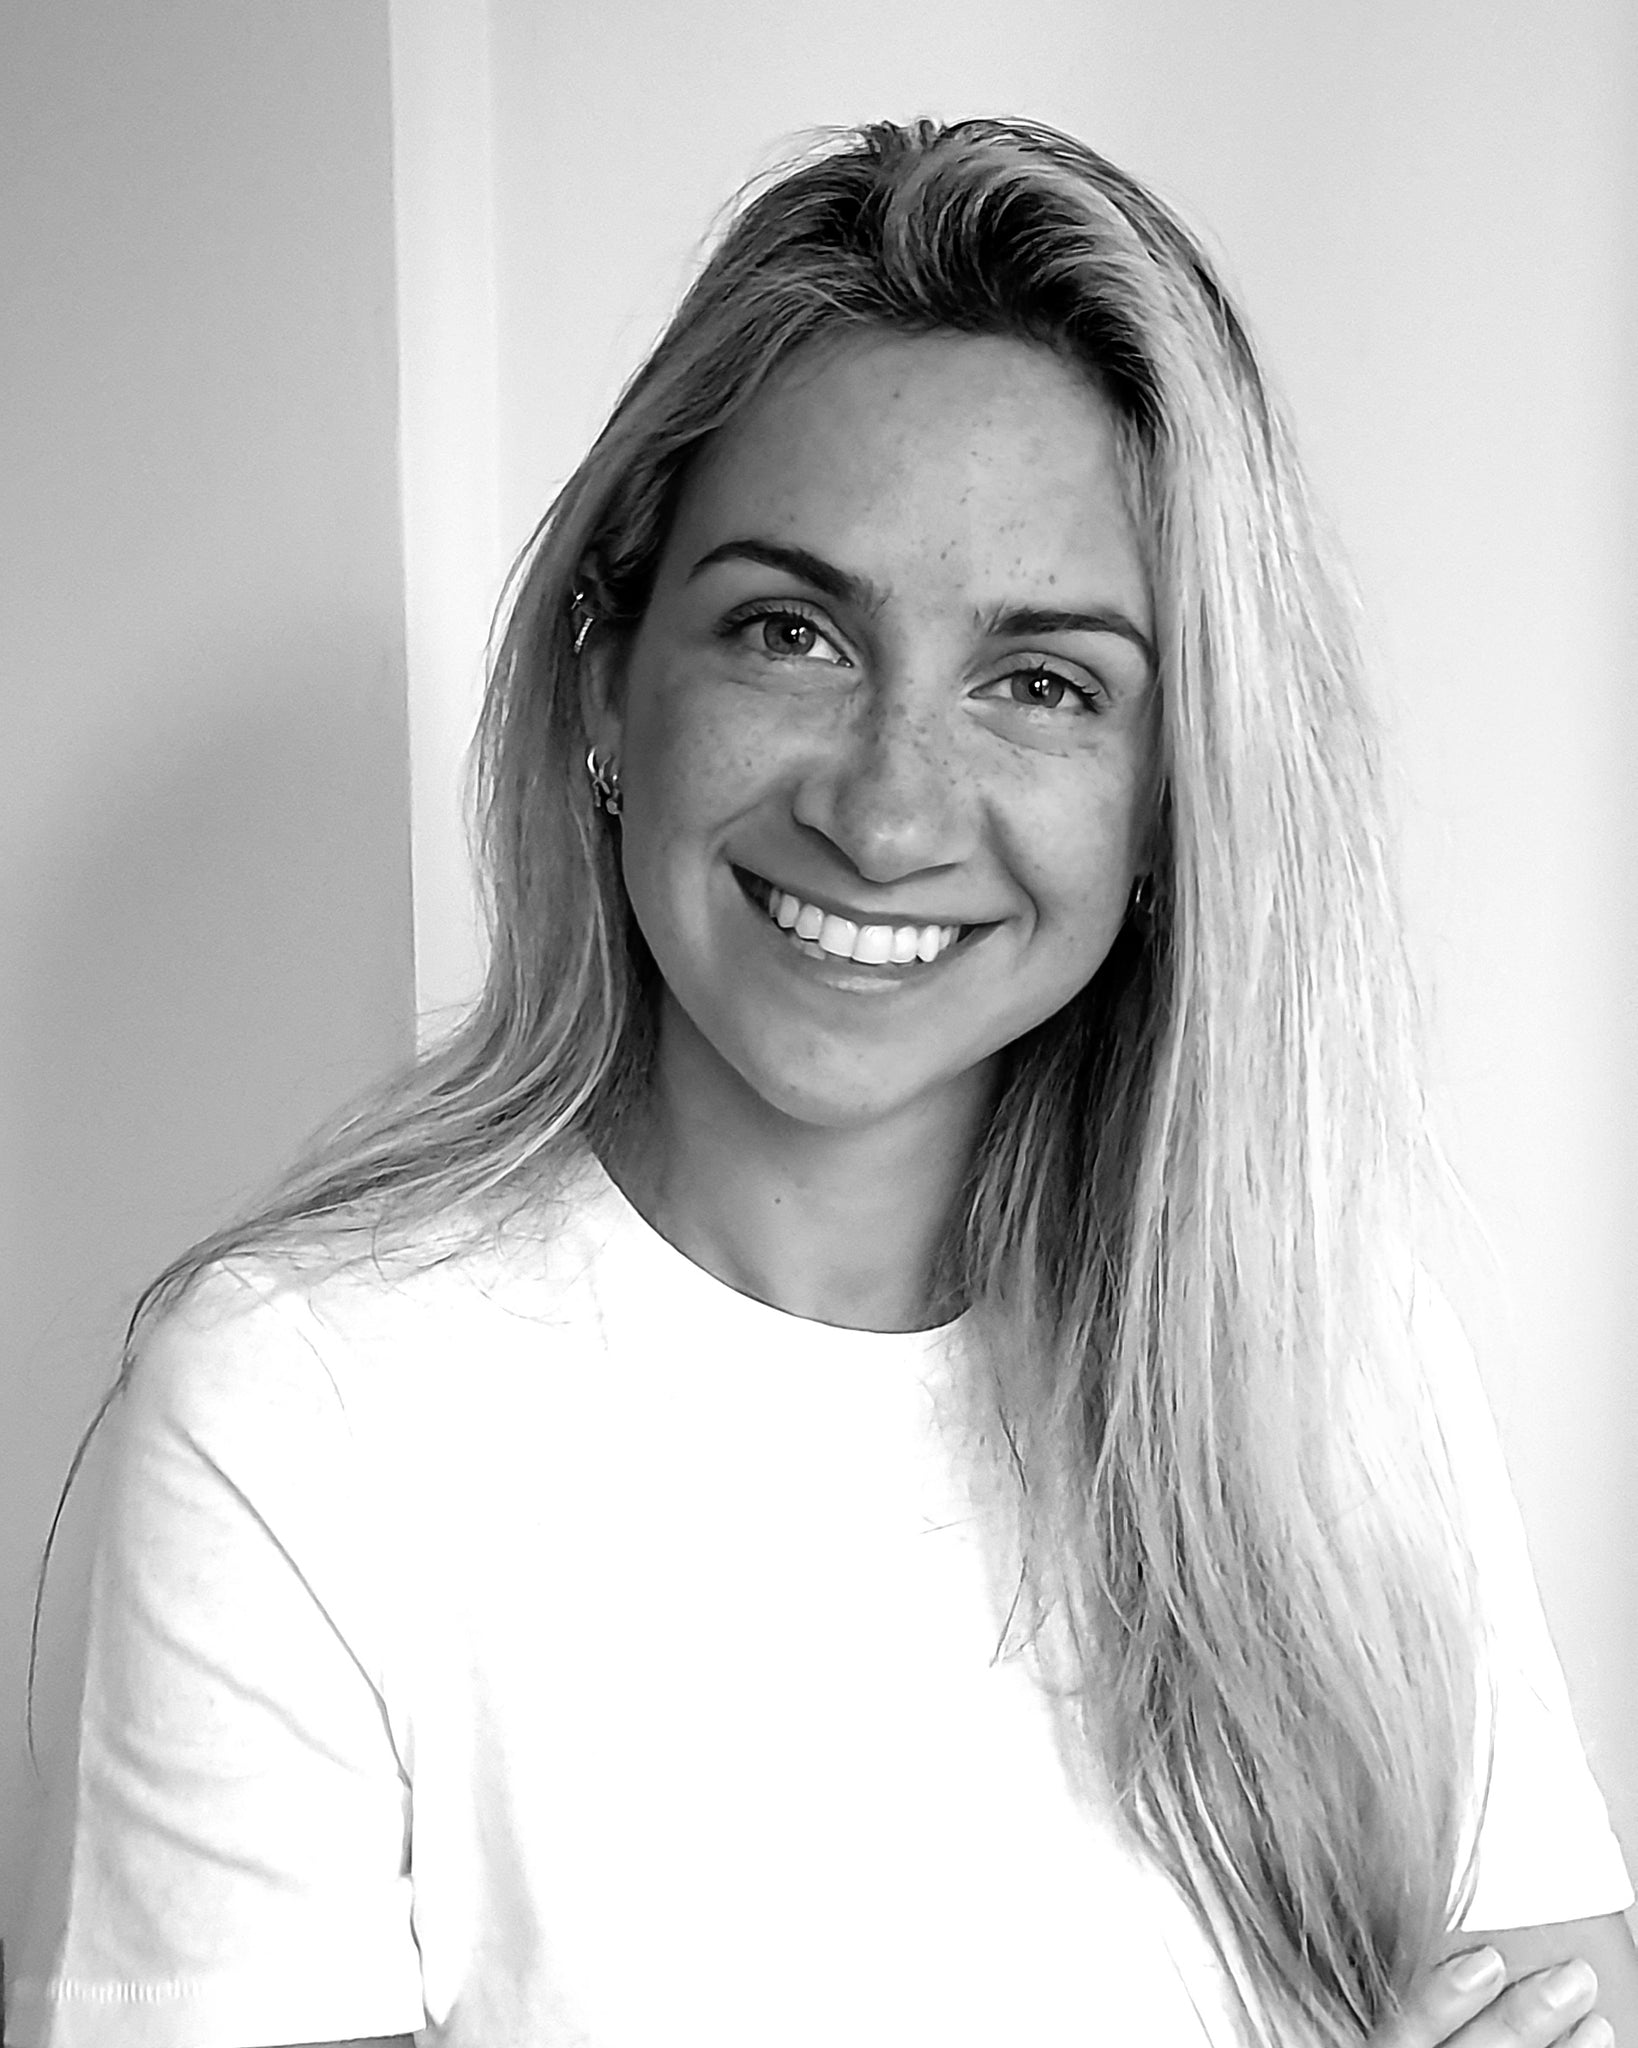 One & Only Resorts Buyer, Duygu Uras Joins the COCO Consultancy